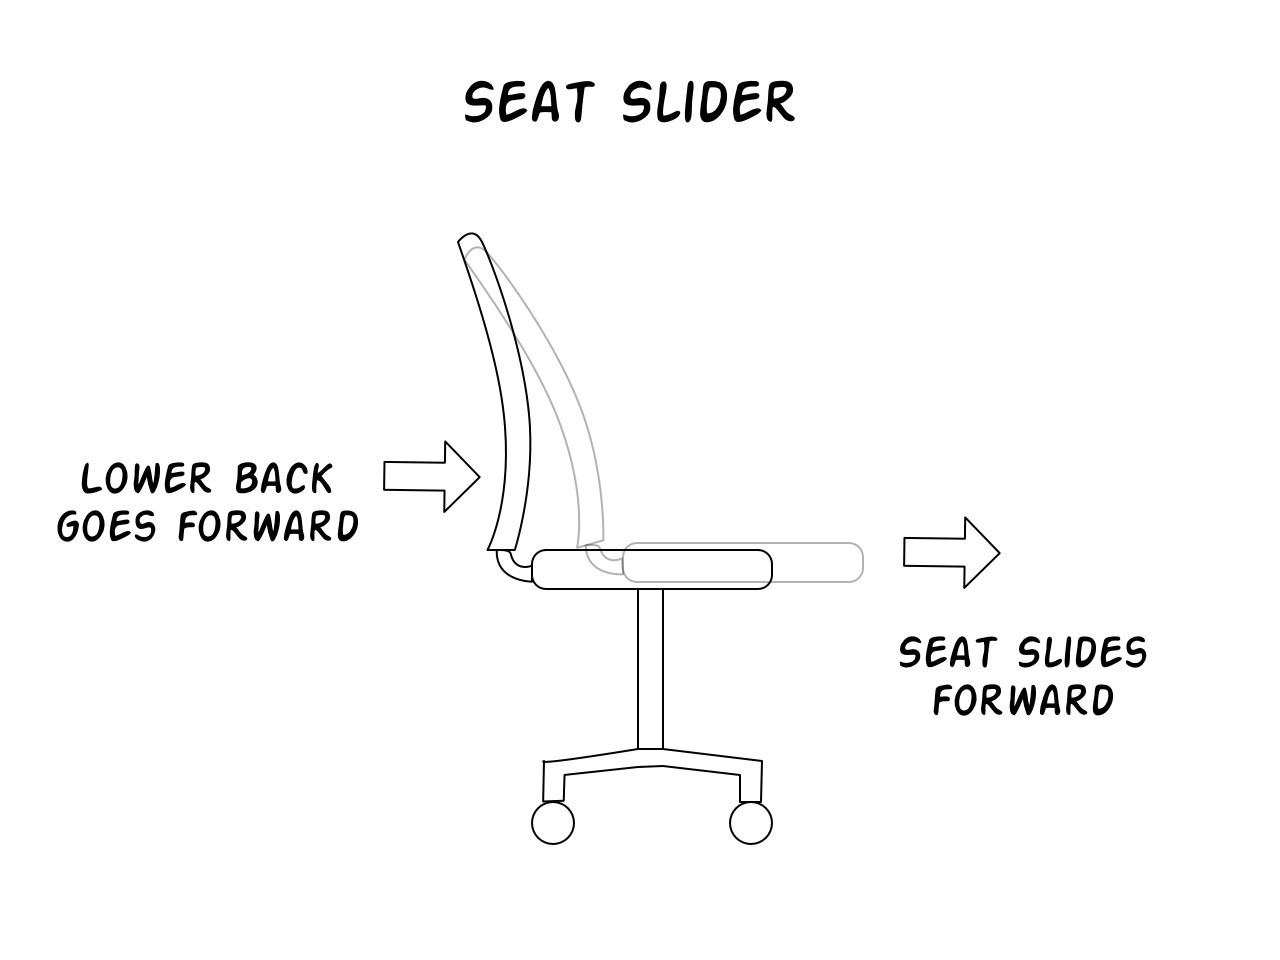 Seat Slider diagram